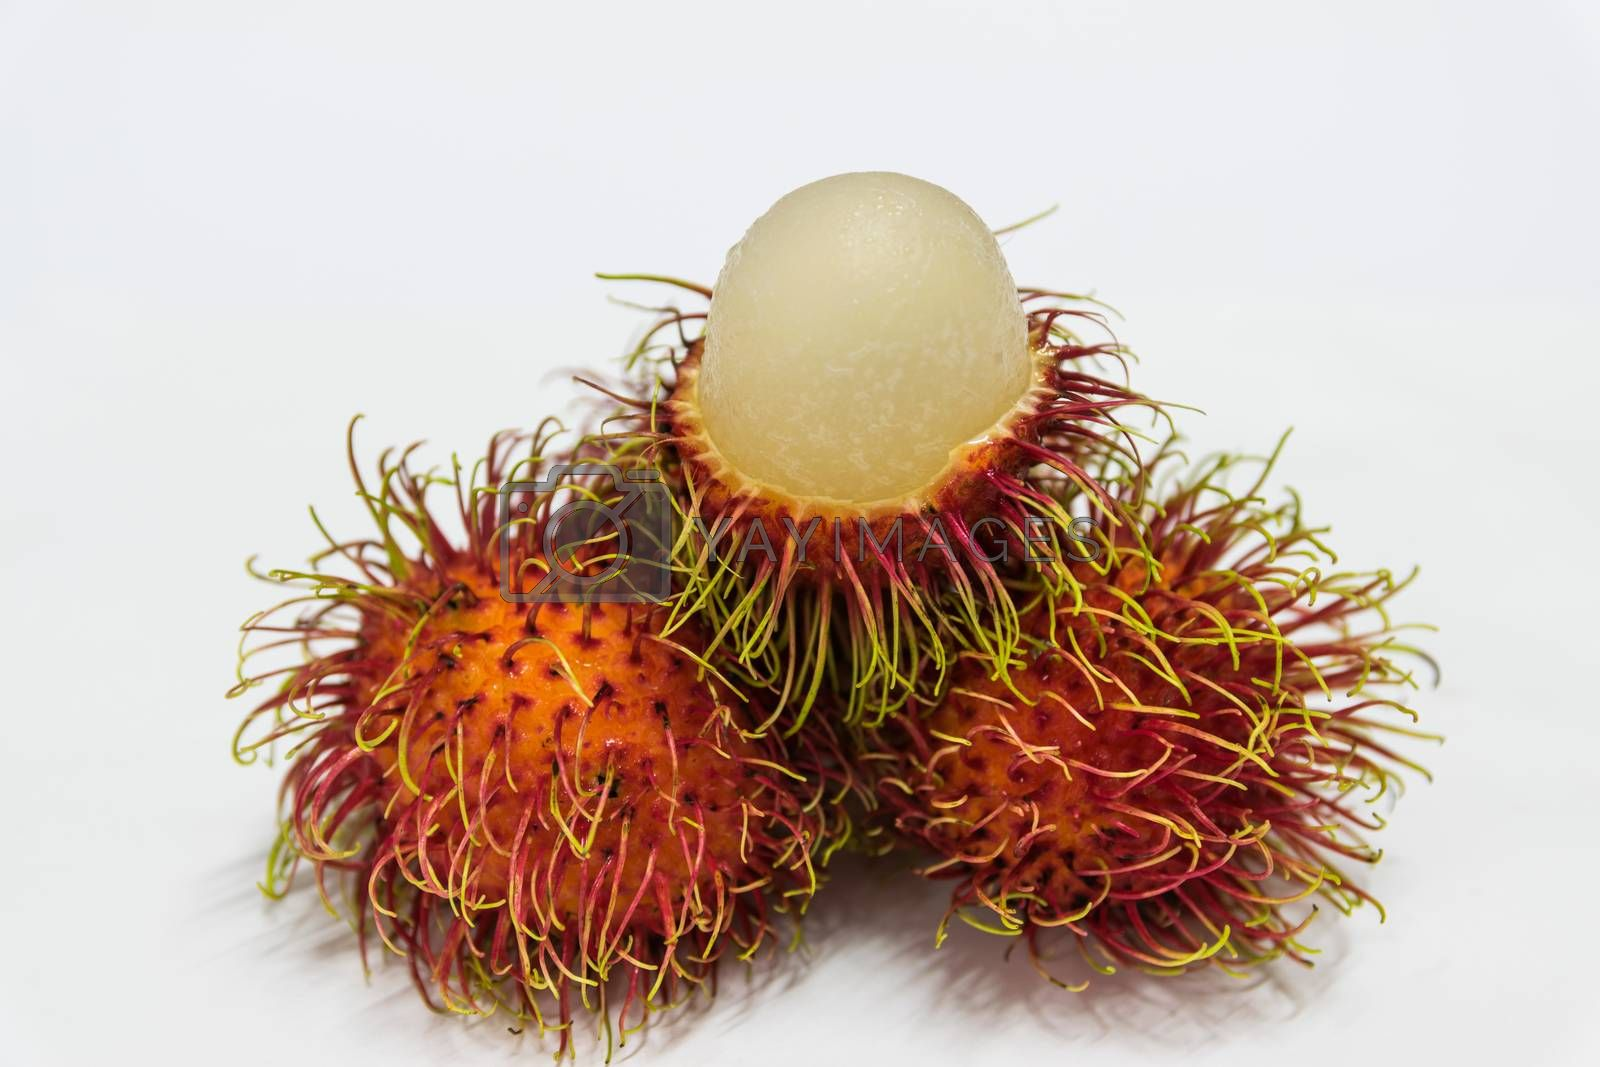 Rambutan thai fruits a red, plum-sized tropical fruit with soft spines and a slightly acidic taste.